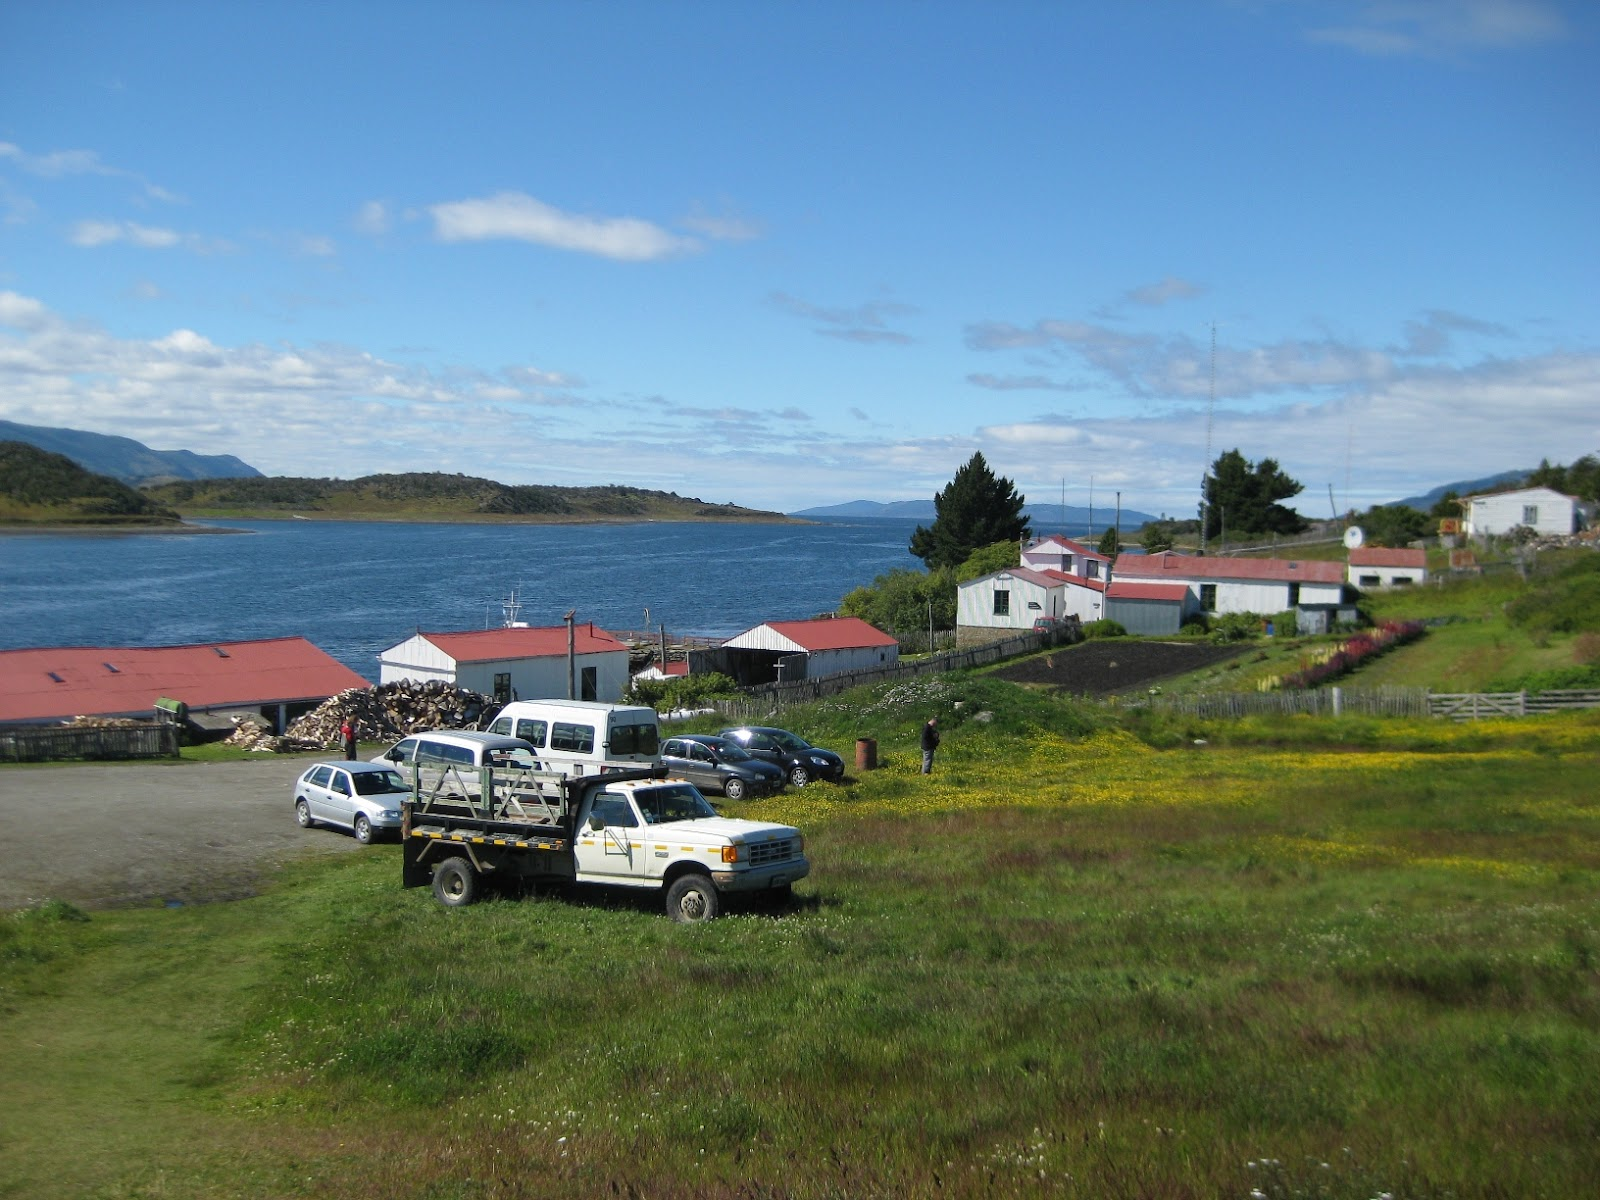 Estancia Harberton, first on the island (first building on the island!)